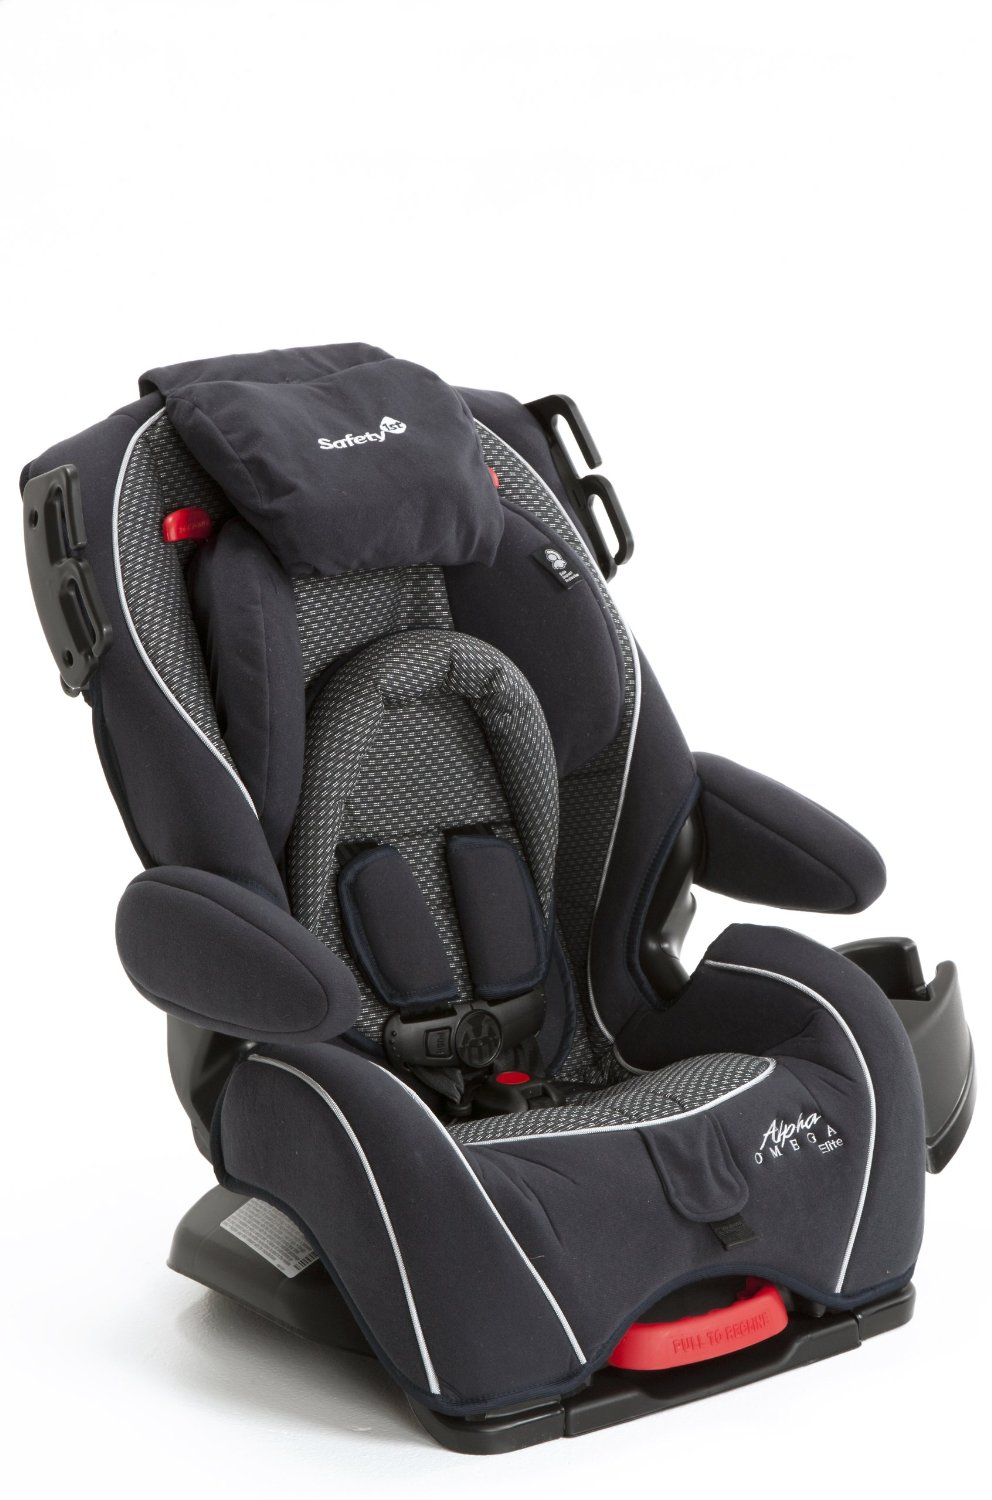 Amazon.com : Safety 1st Alpha Omega Elite Convertible Car Seat, Seaside Bay : Convertible Child Safety Car Seats